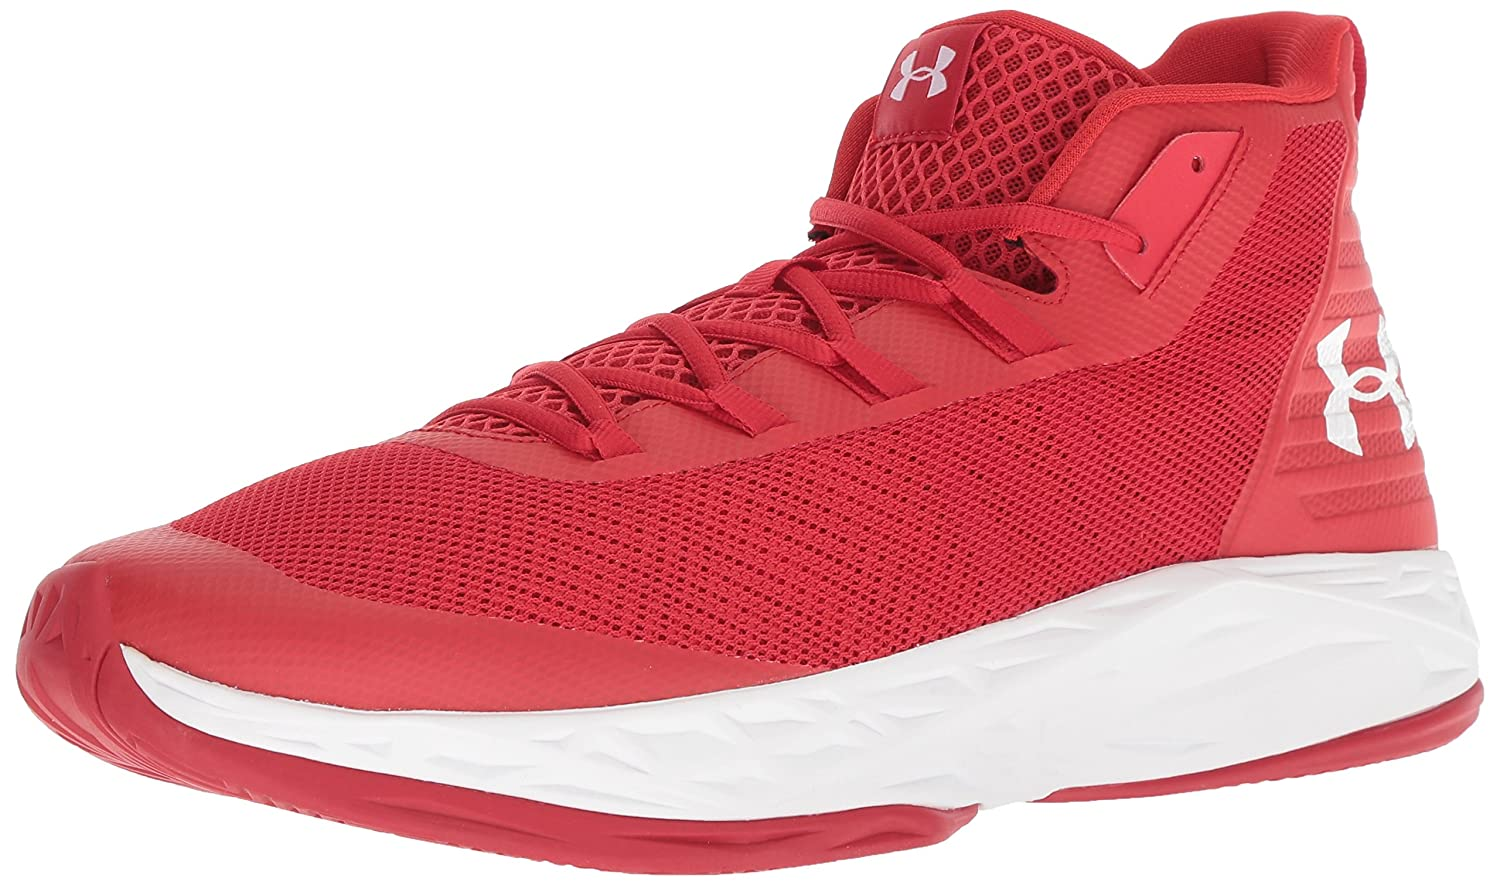 Under Armour UA de Jet Mid, Chaussures de UA Basketball Homme 42 EU|Rouge (Red/White) 371a61